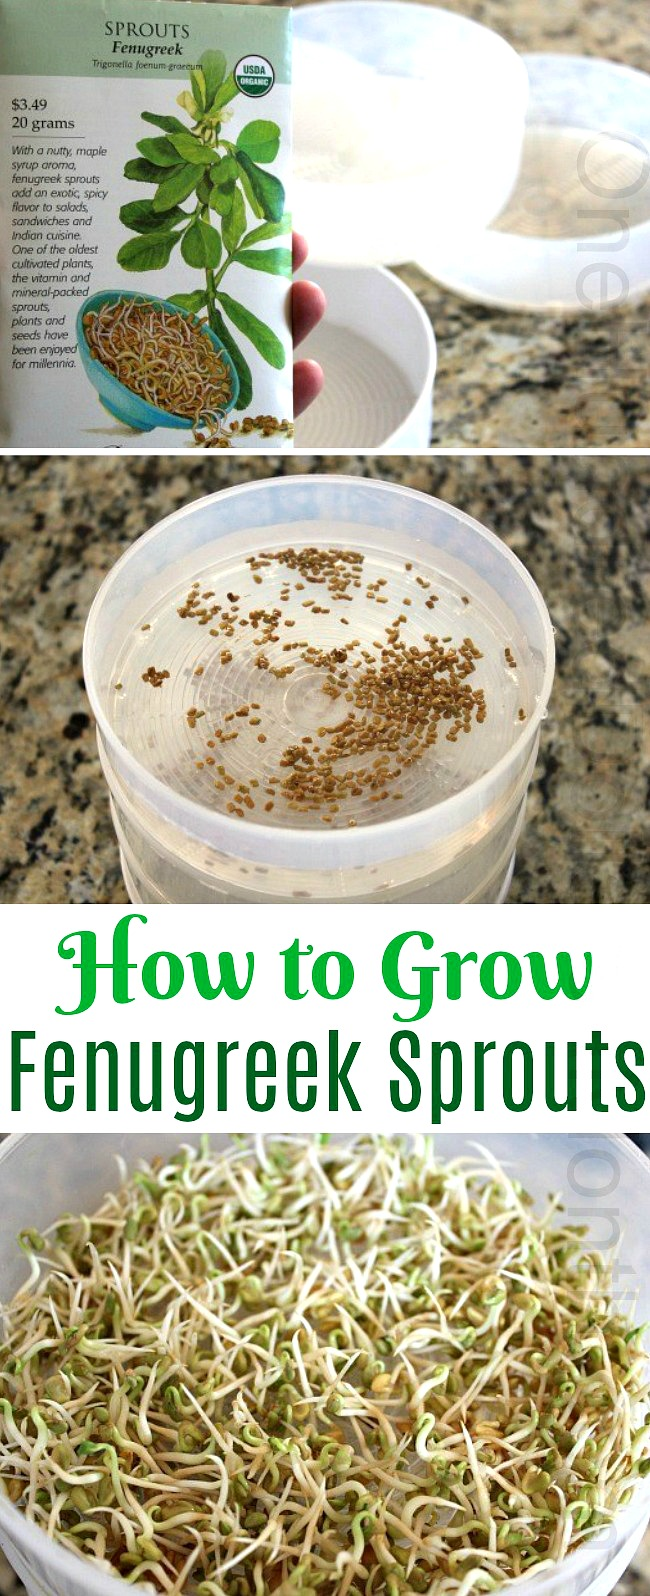 How to Grow Fenugreek Sprouts {Start to Finish}